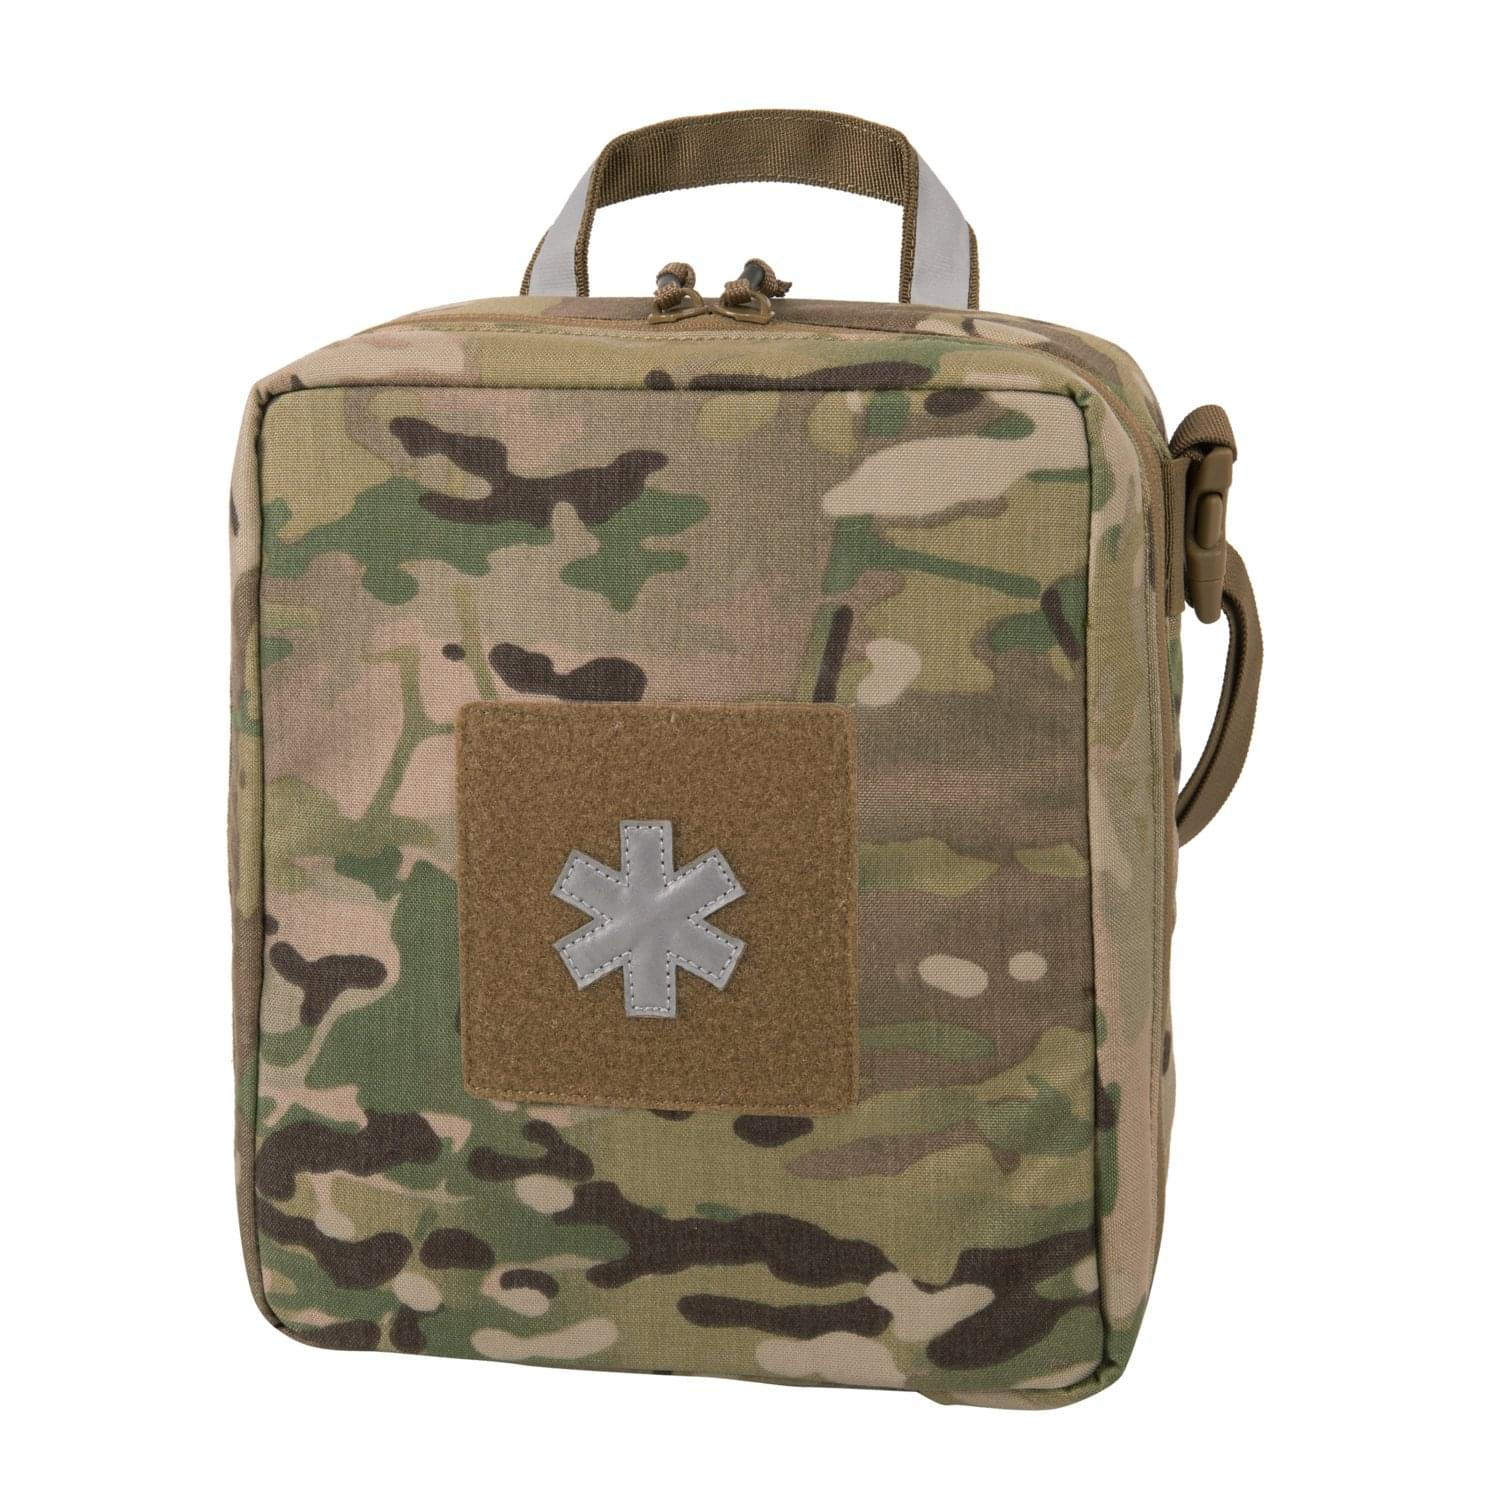 AUTOMOTIVE MED KIT® POUCH - CORDURA® - Multicam